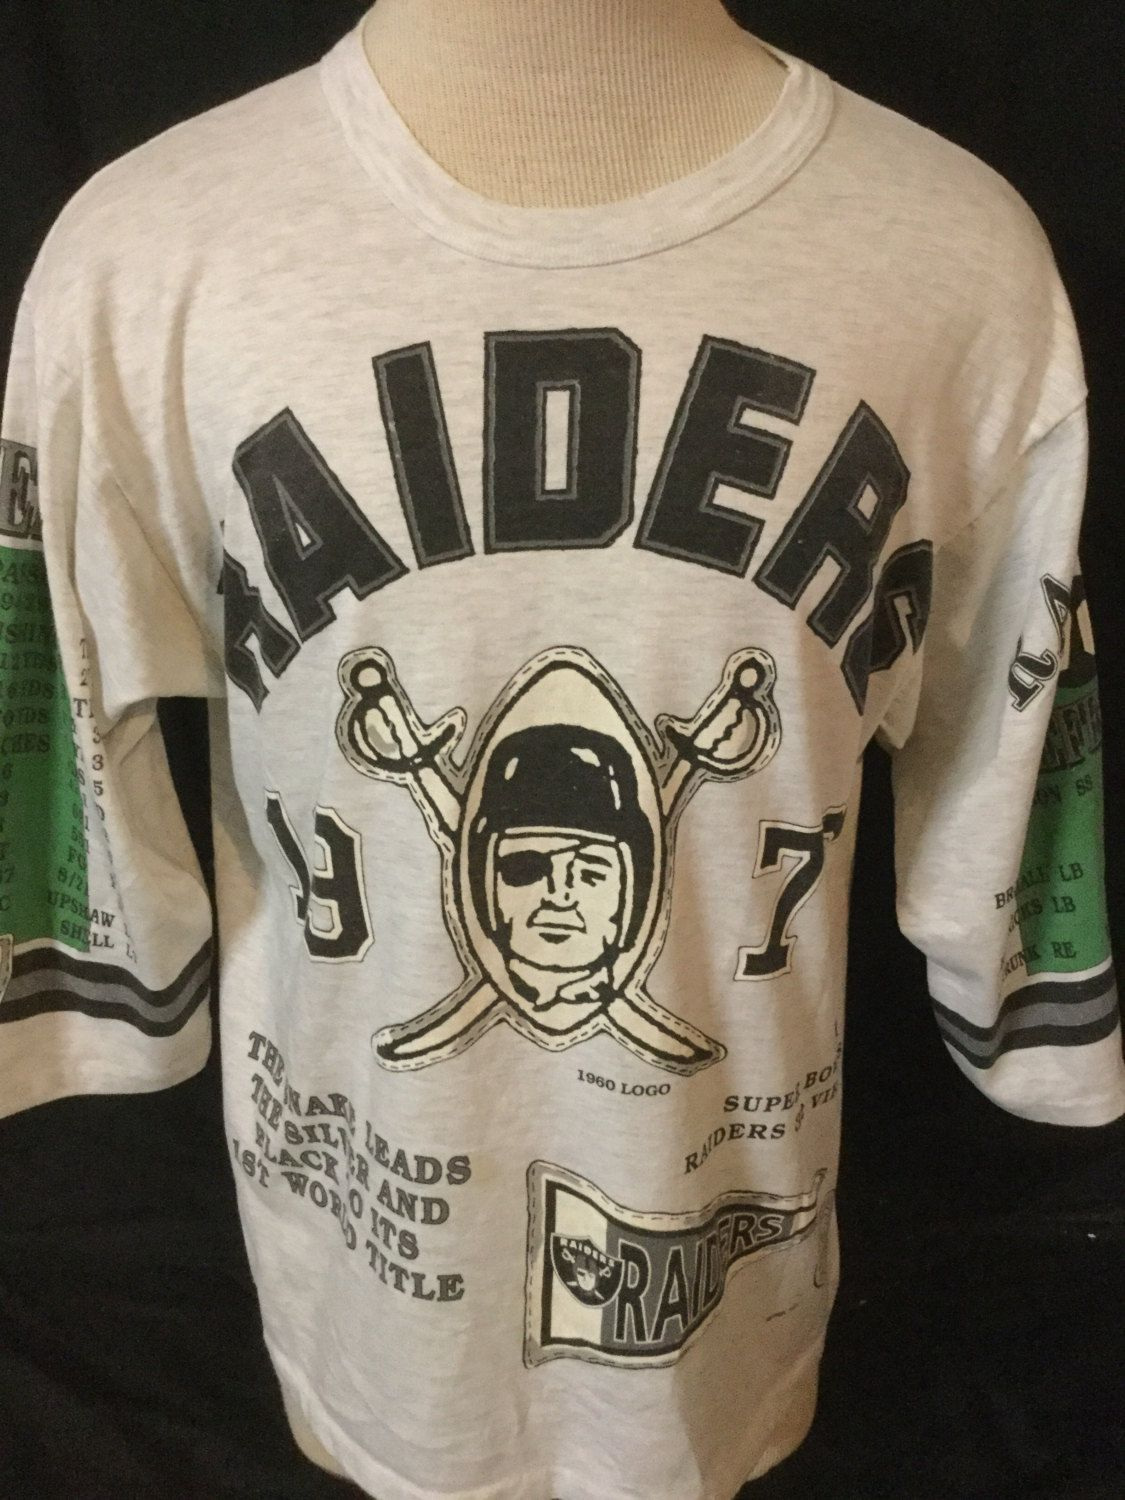 8cc7d106 Vintage 1990's Oakland Raiders Commerative Shirt 1976 Jersey T-Shirt ...